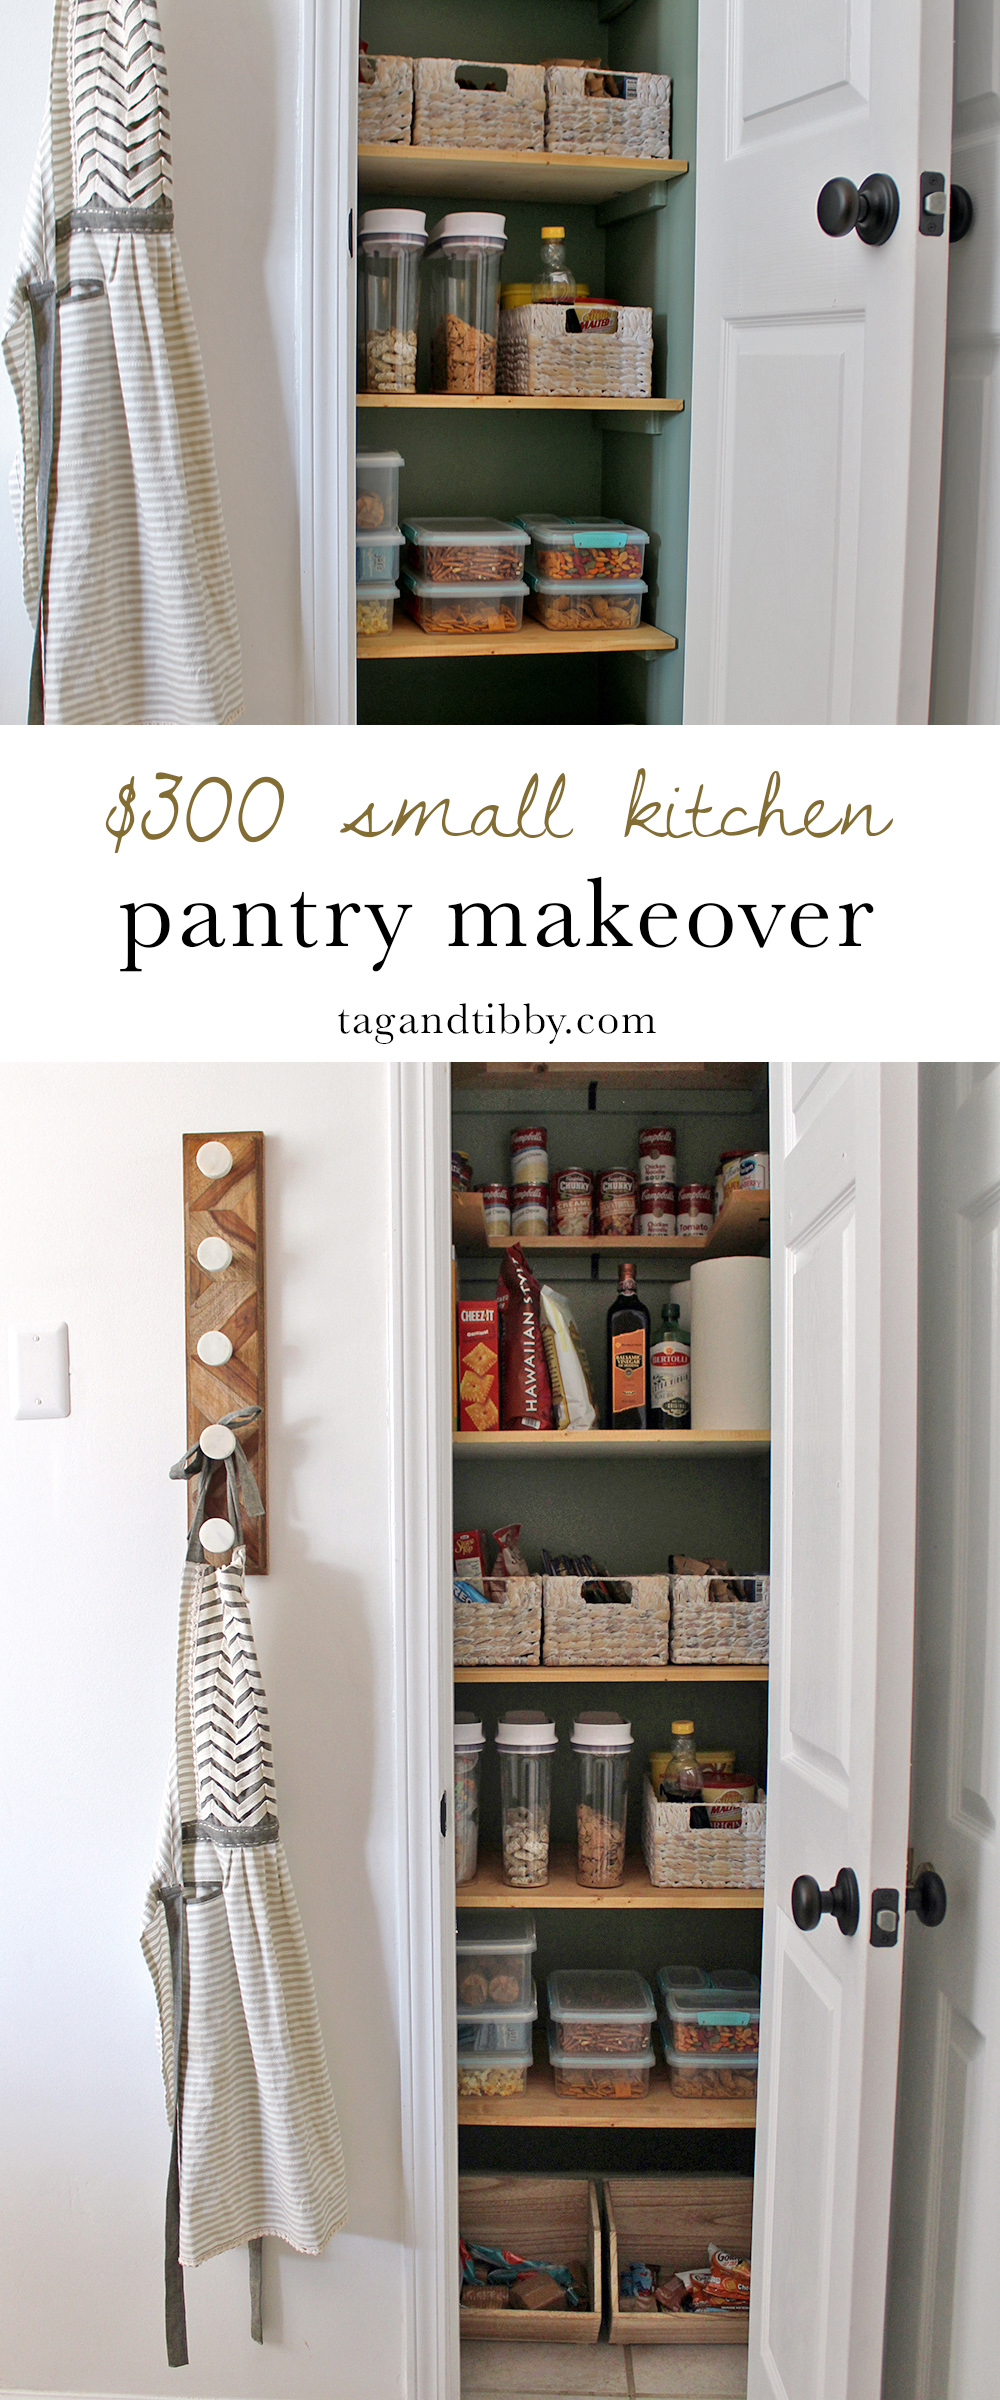 A Small Kitchen Pantry Makeover for $300 with supply list and tips